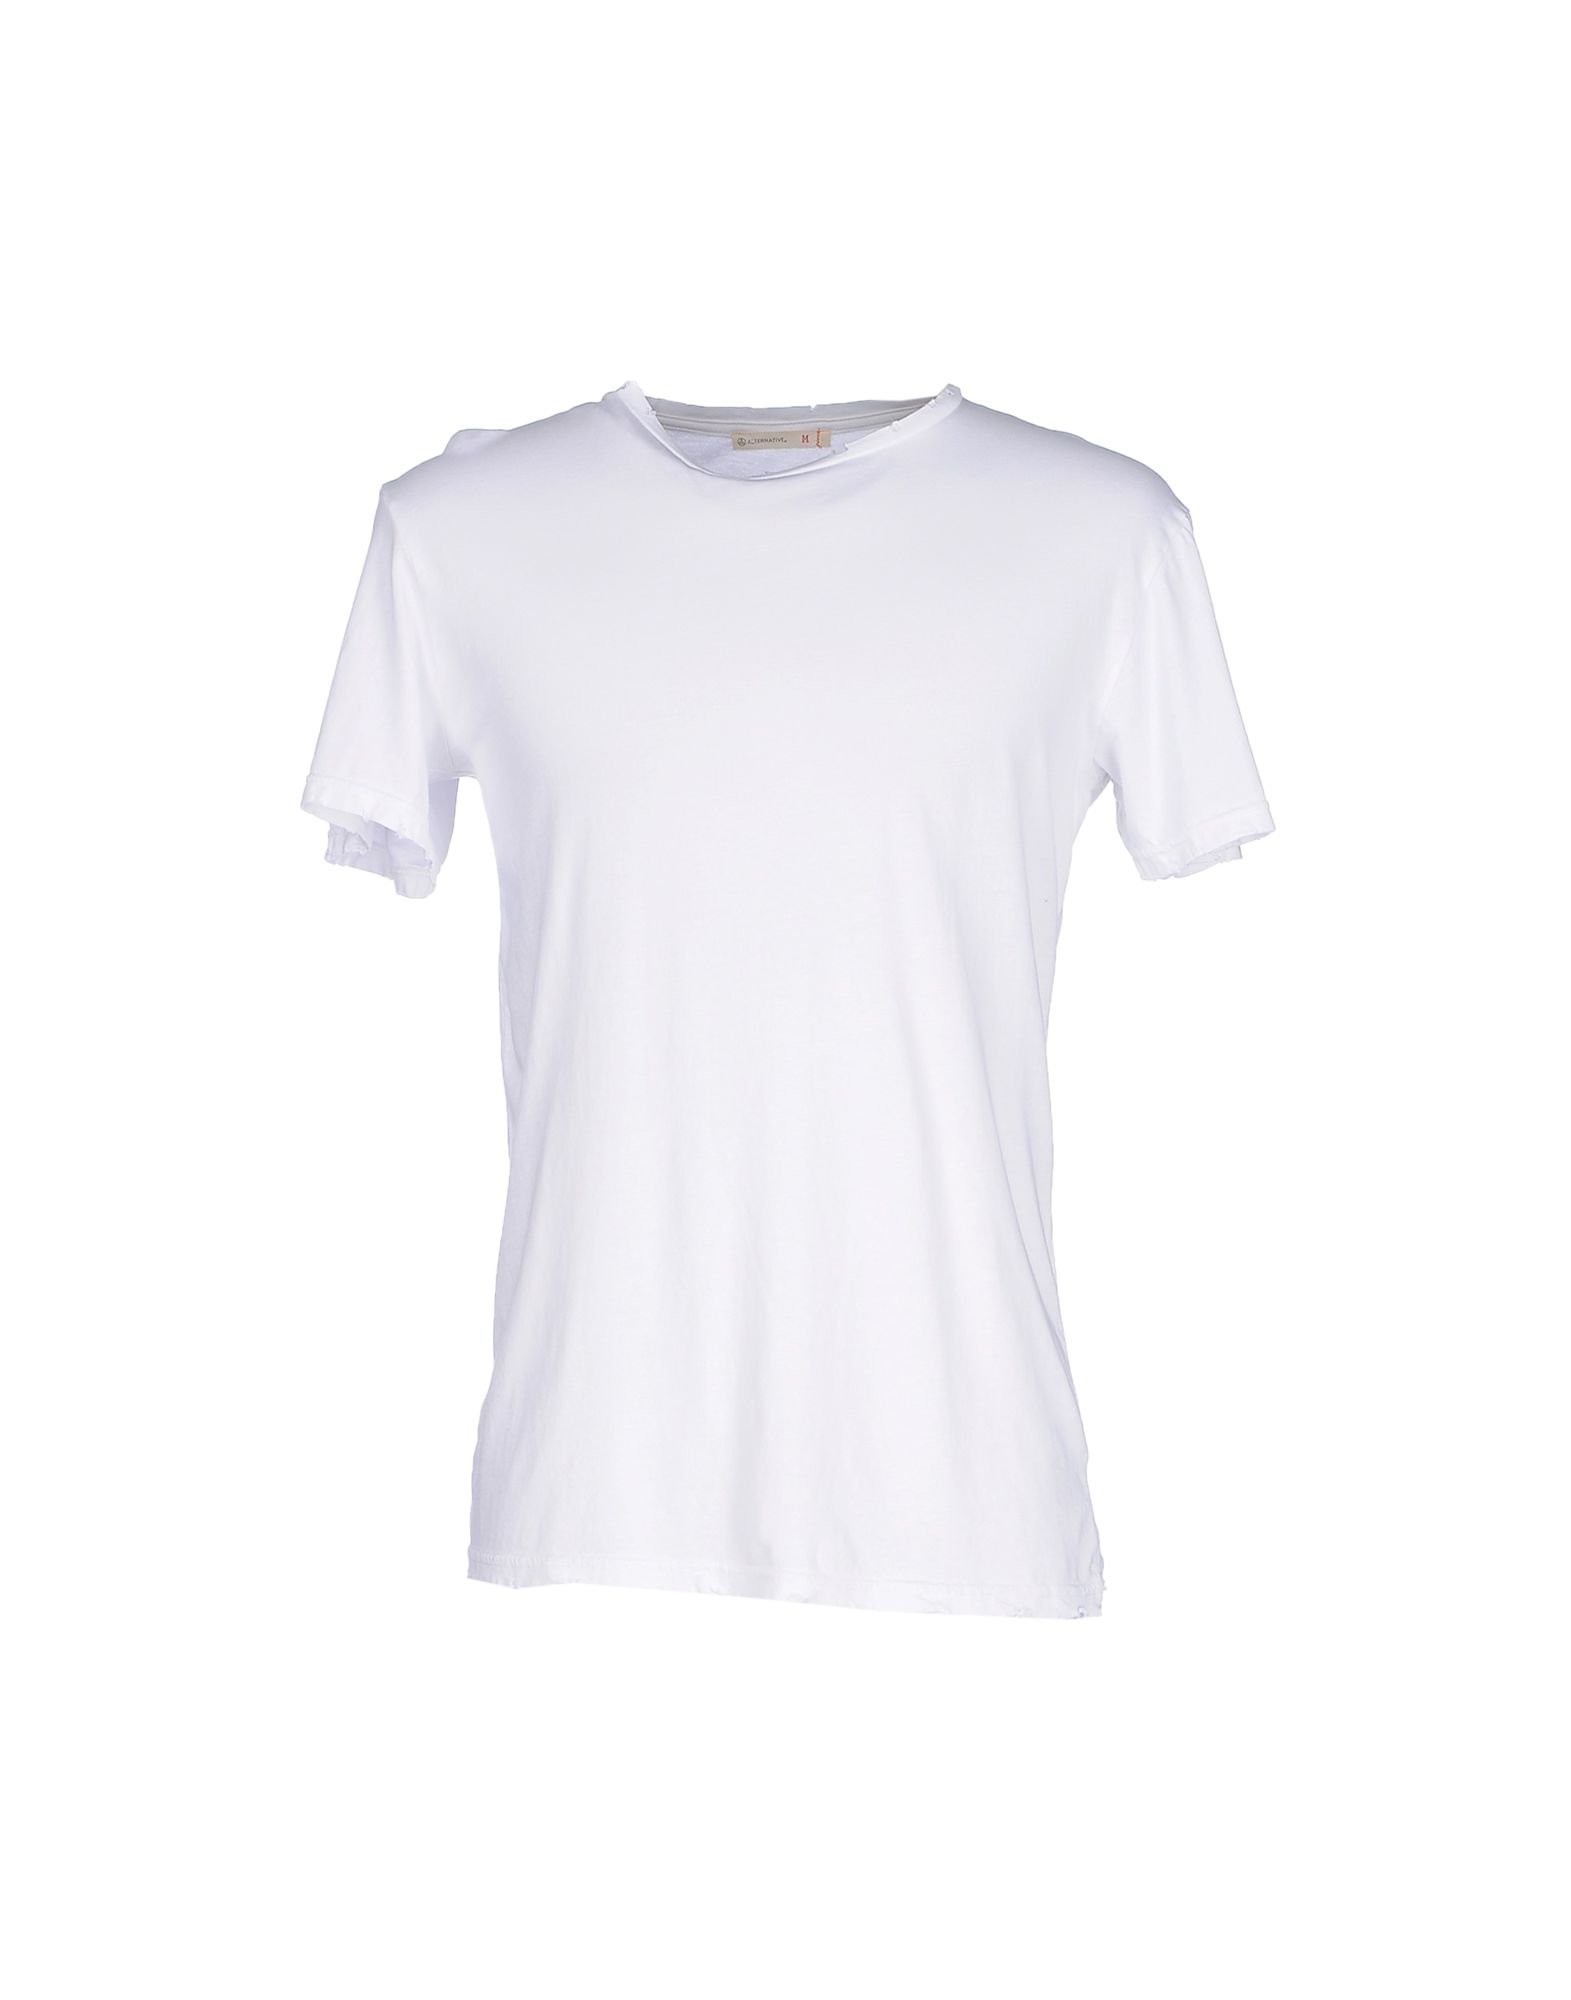 ALTERNATIVE APPAREL &Reg; T-Shirts in White